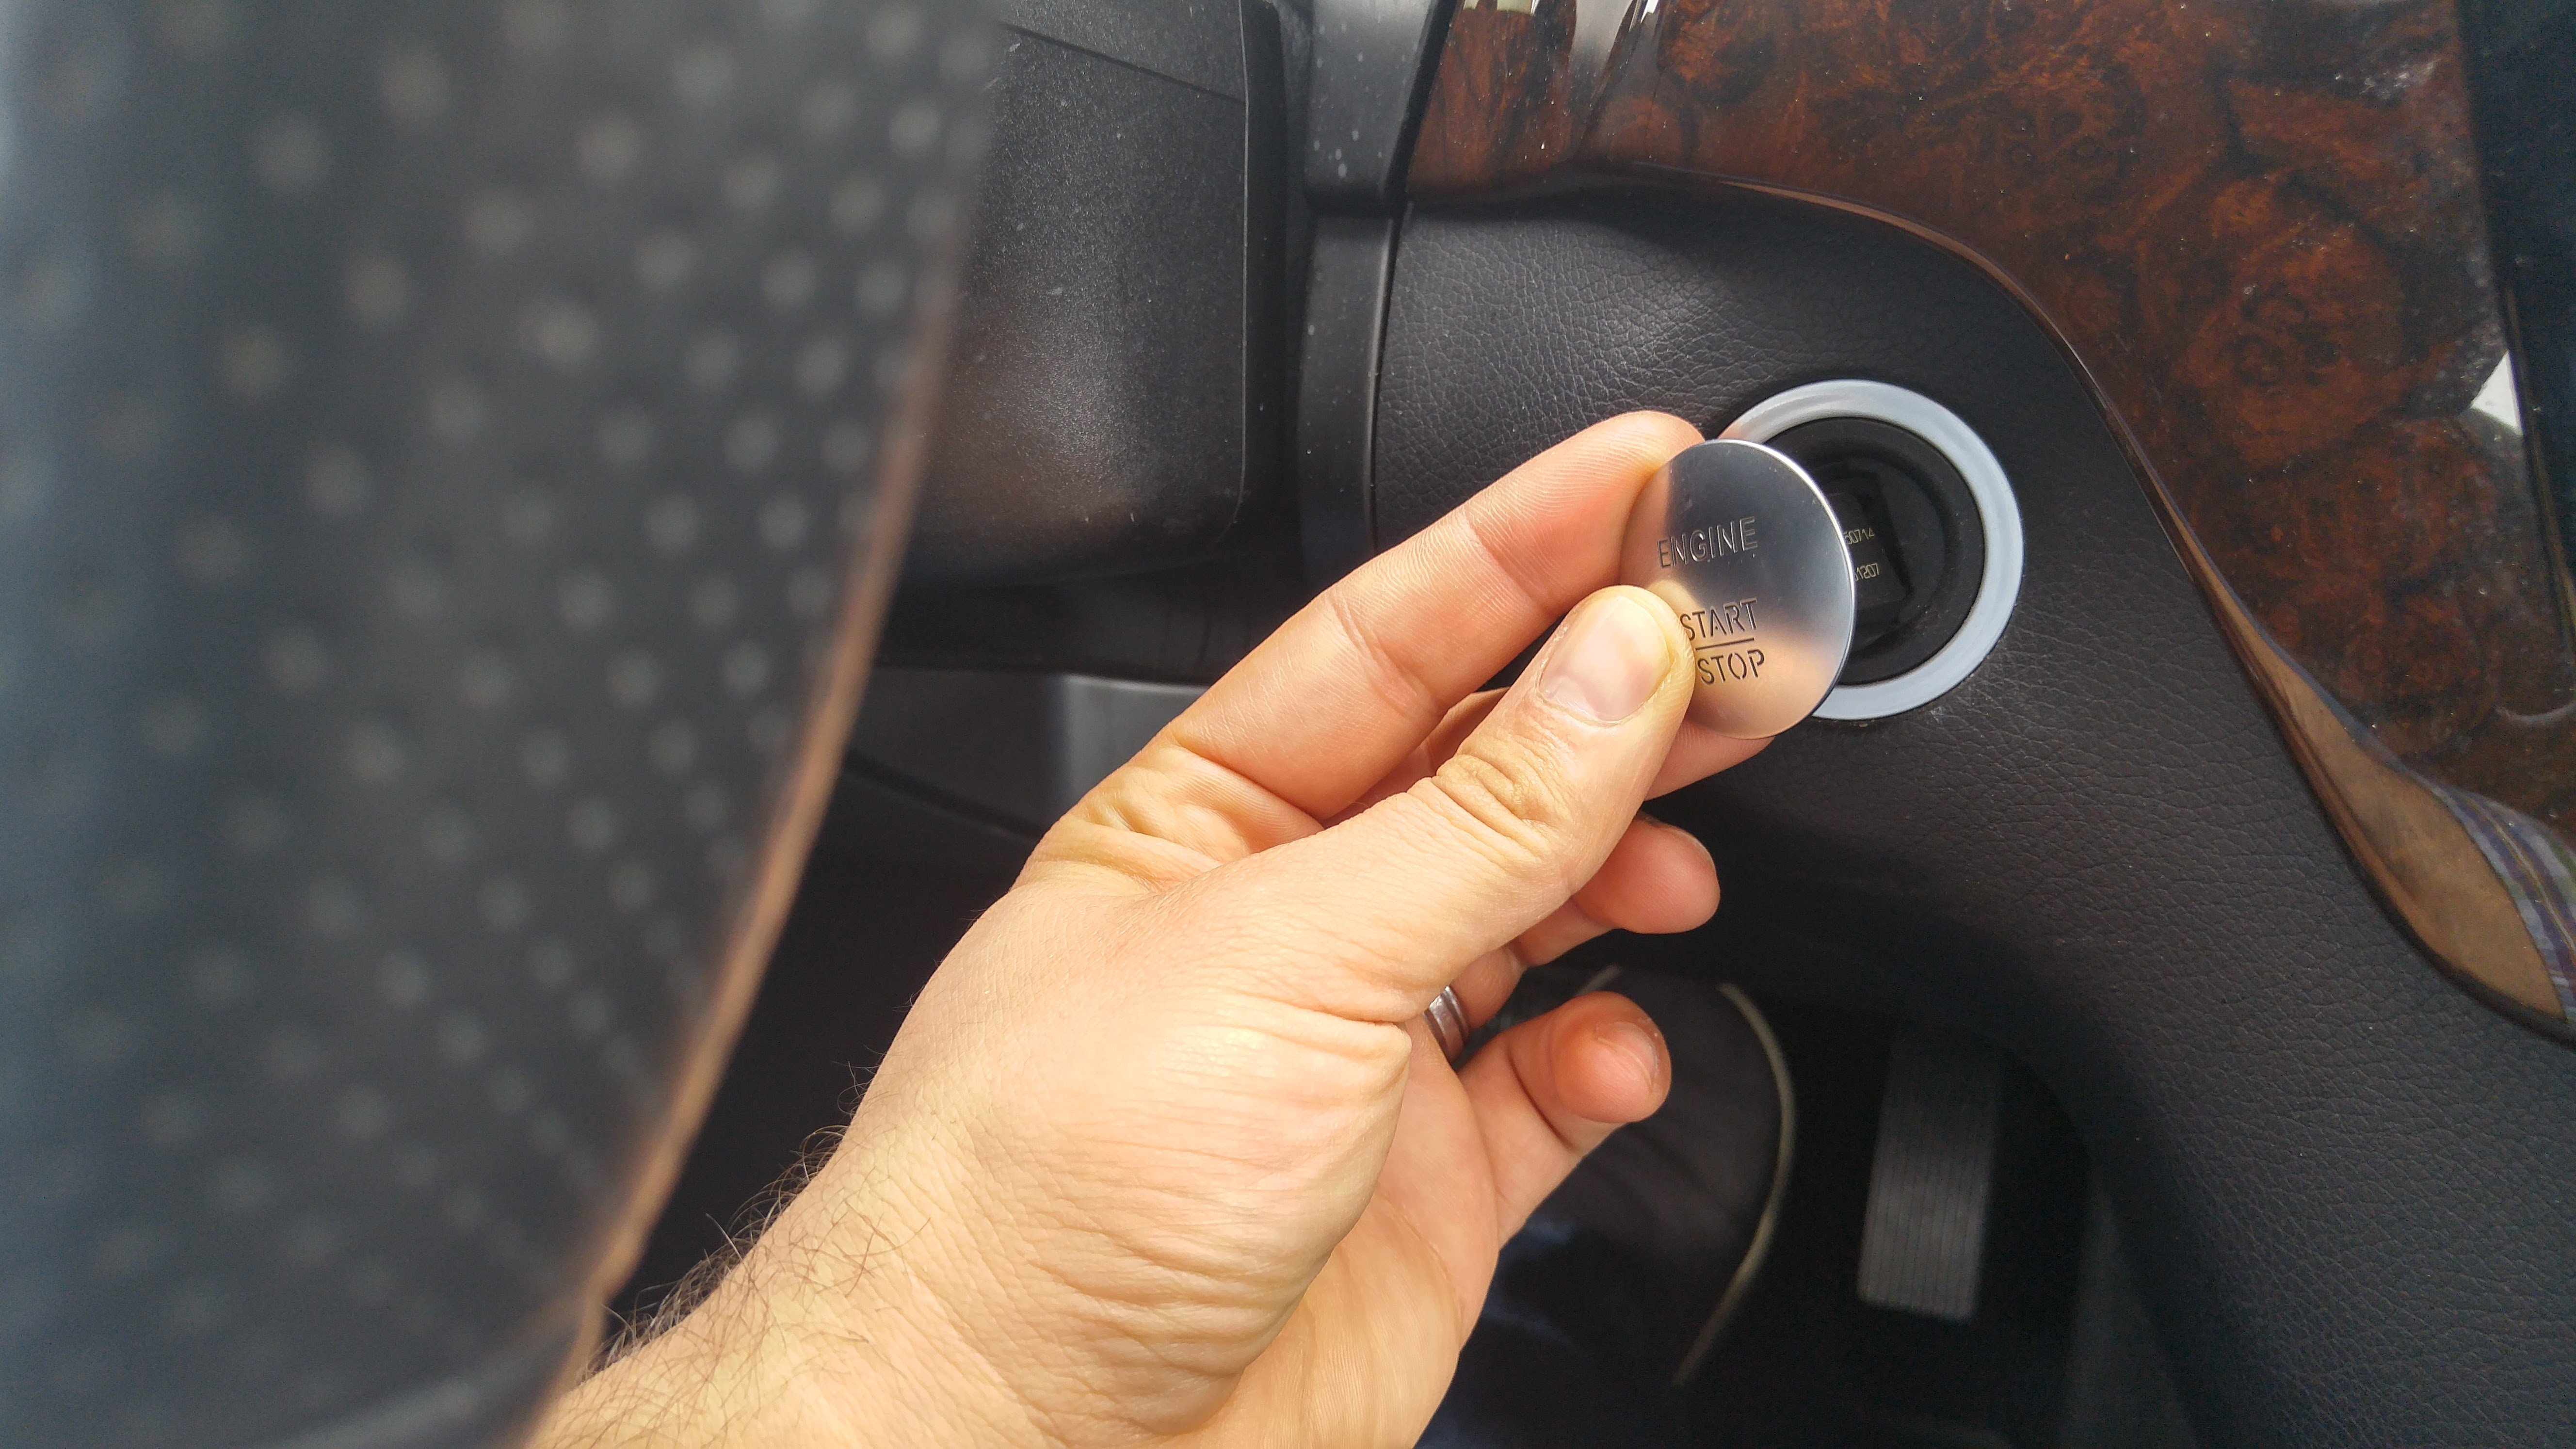 How To Start A Mercedes With Dead Key